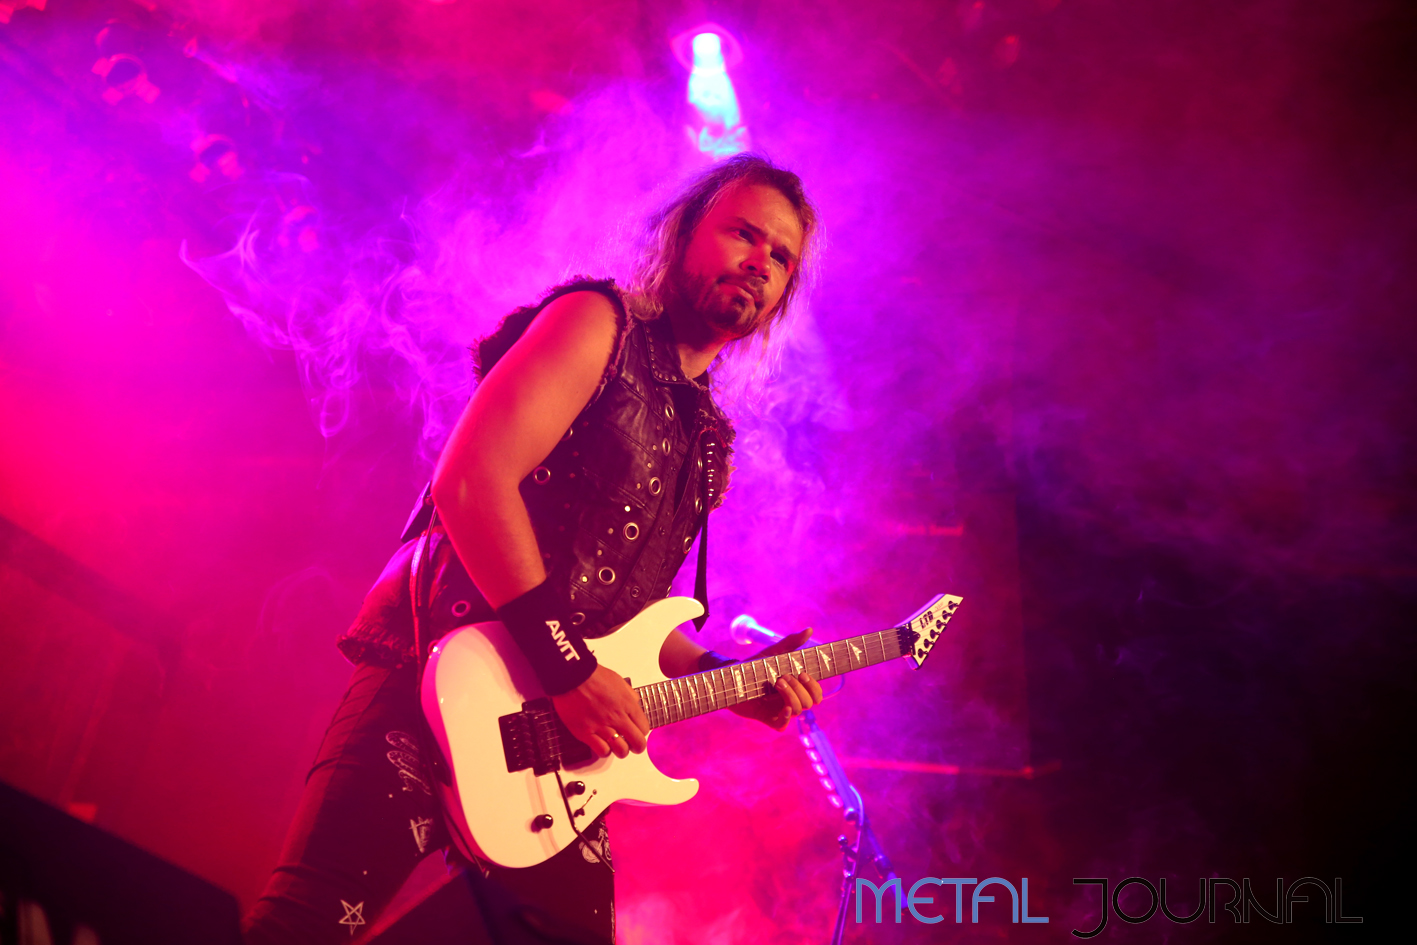 udo - metal journal villava 2019 pic 5